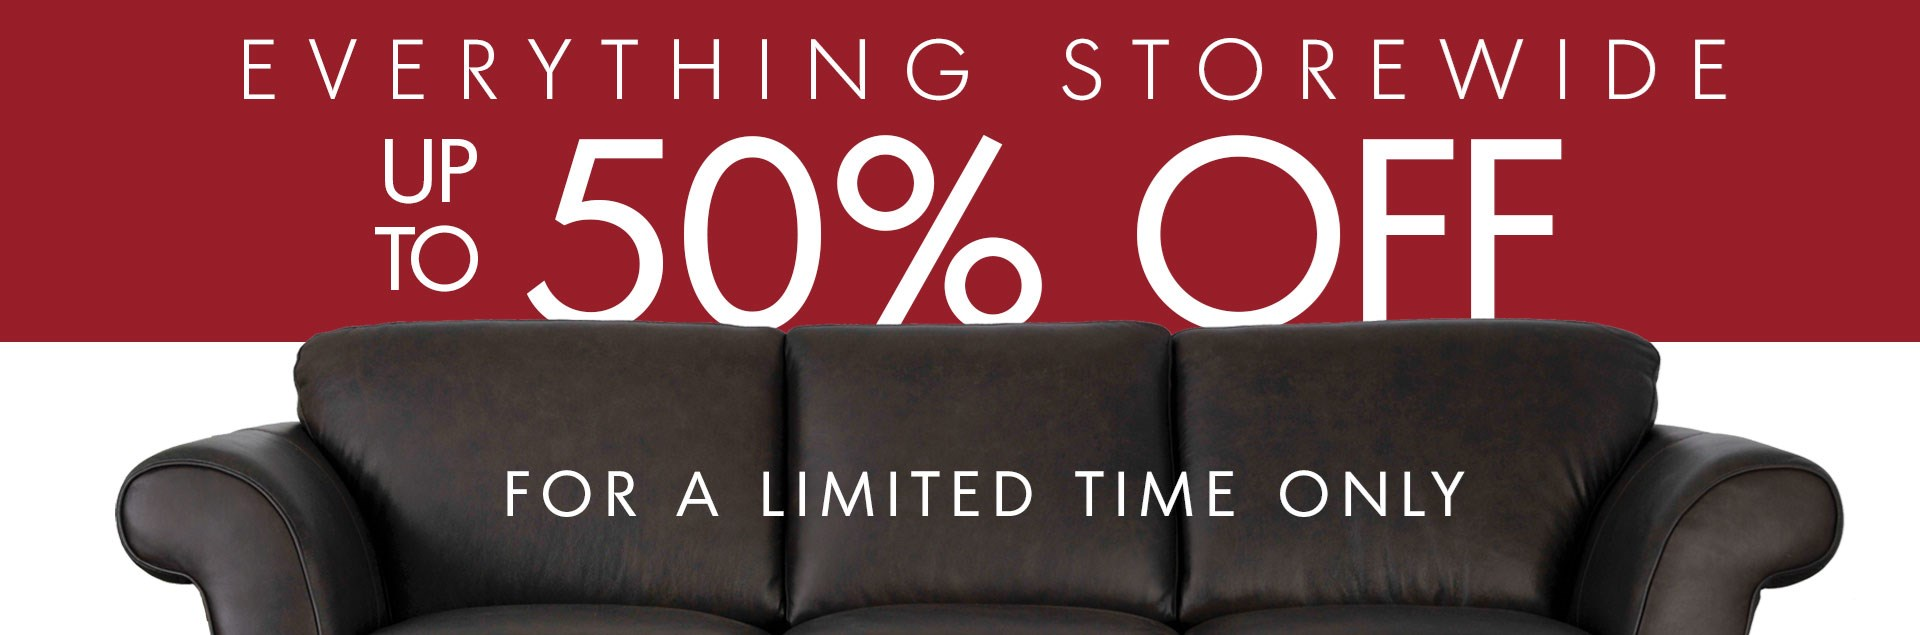 Everything storewide up to 50%